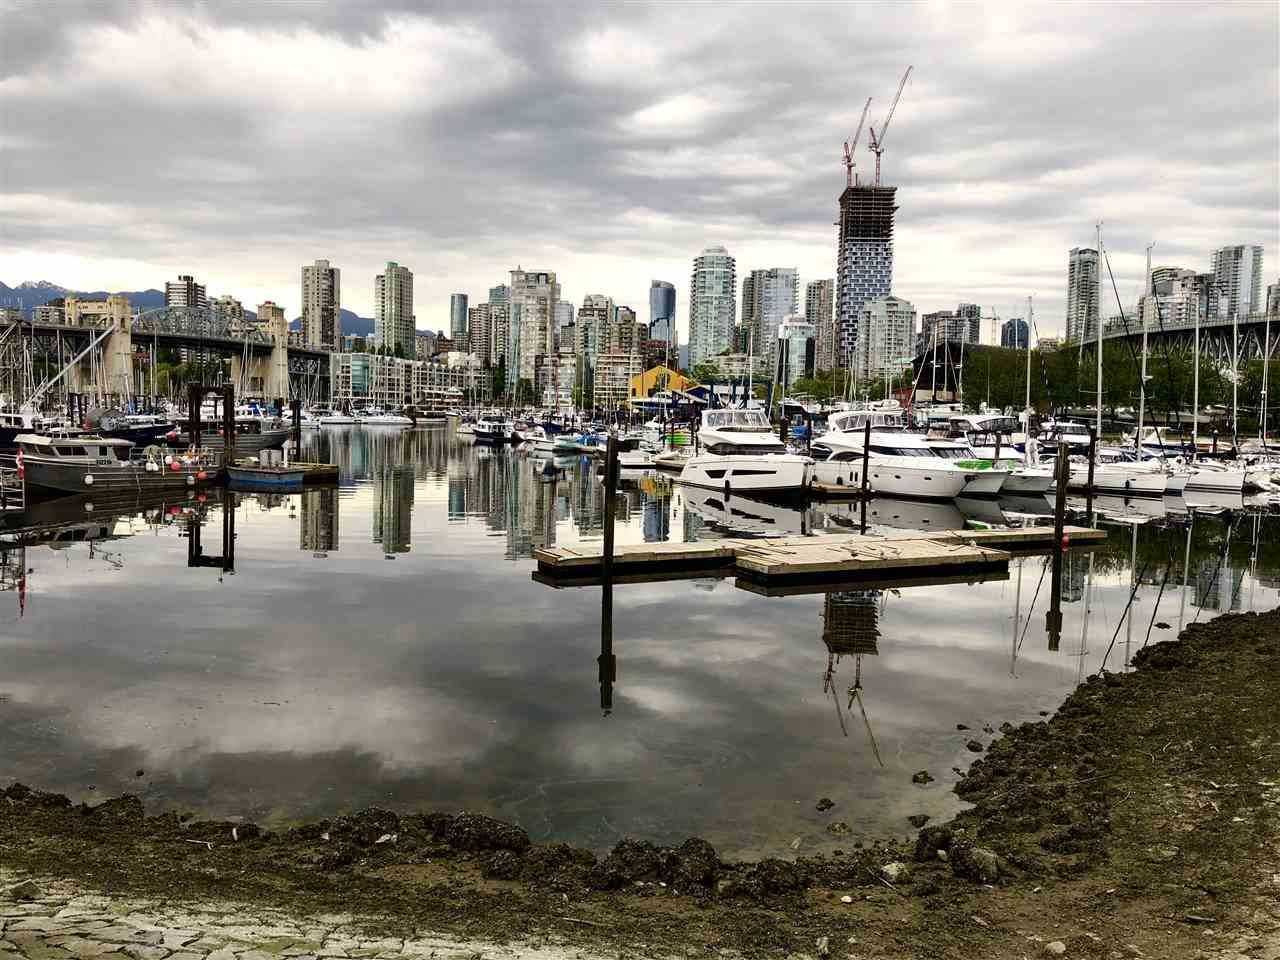 """Main Photo: 501 1508 MARINER Walk in Vancouver: False Creek Condo for sale in """"Mariner Point"""" (Vancouver West)  : MLS®# R2445128"""